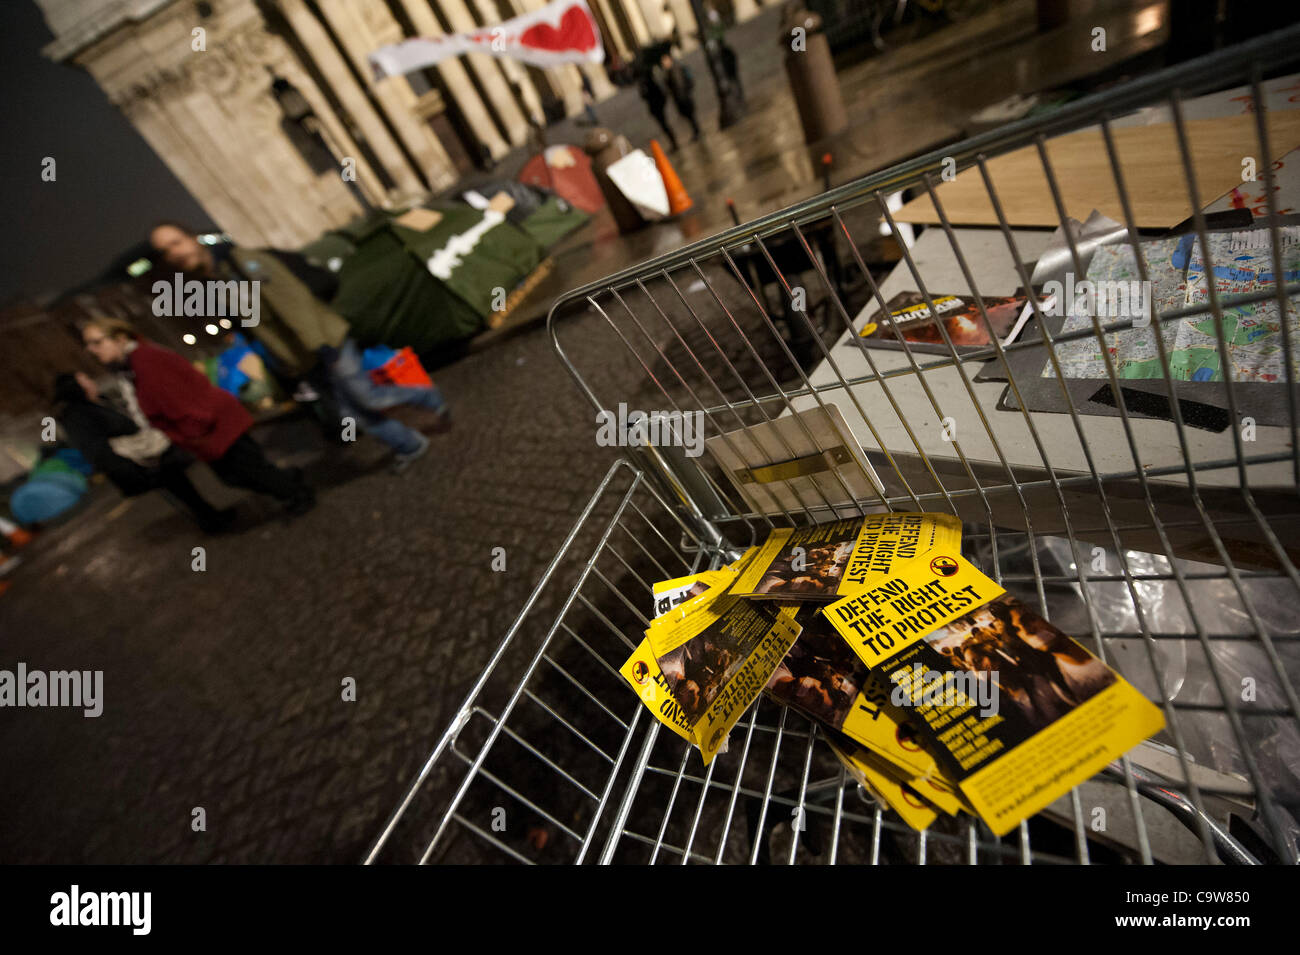 Occupy London fail in their appeal in the High Court. This means that their eviction could take palce at any time. - Stock Image